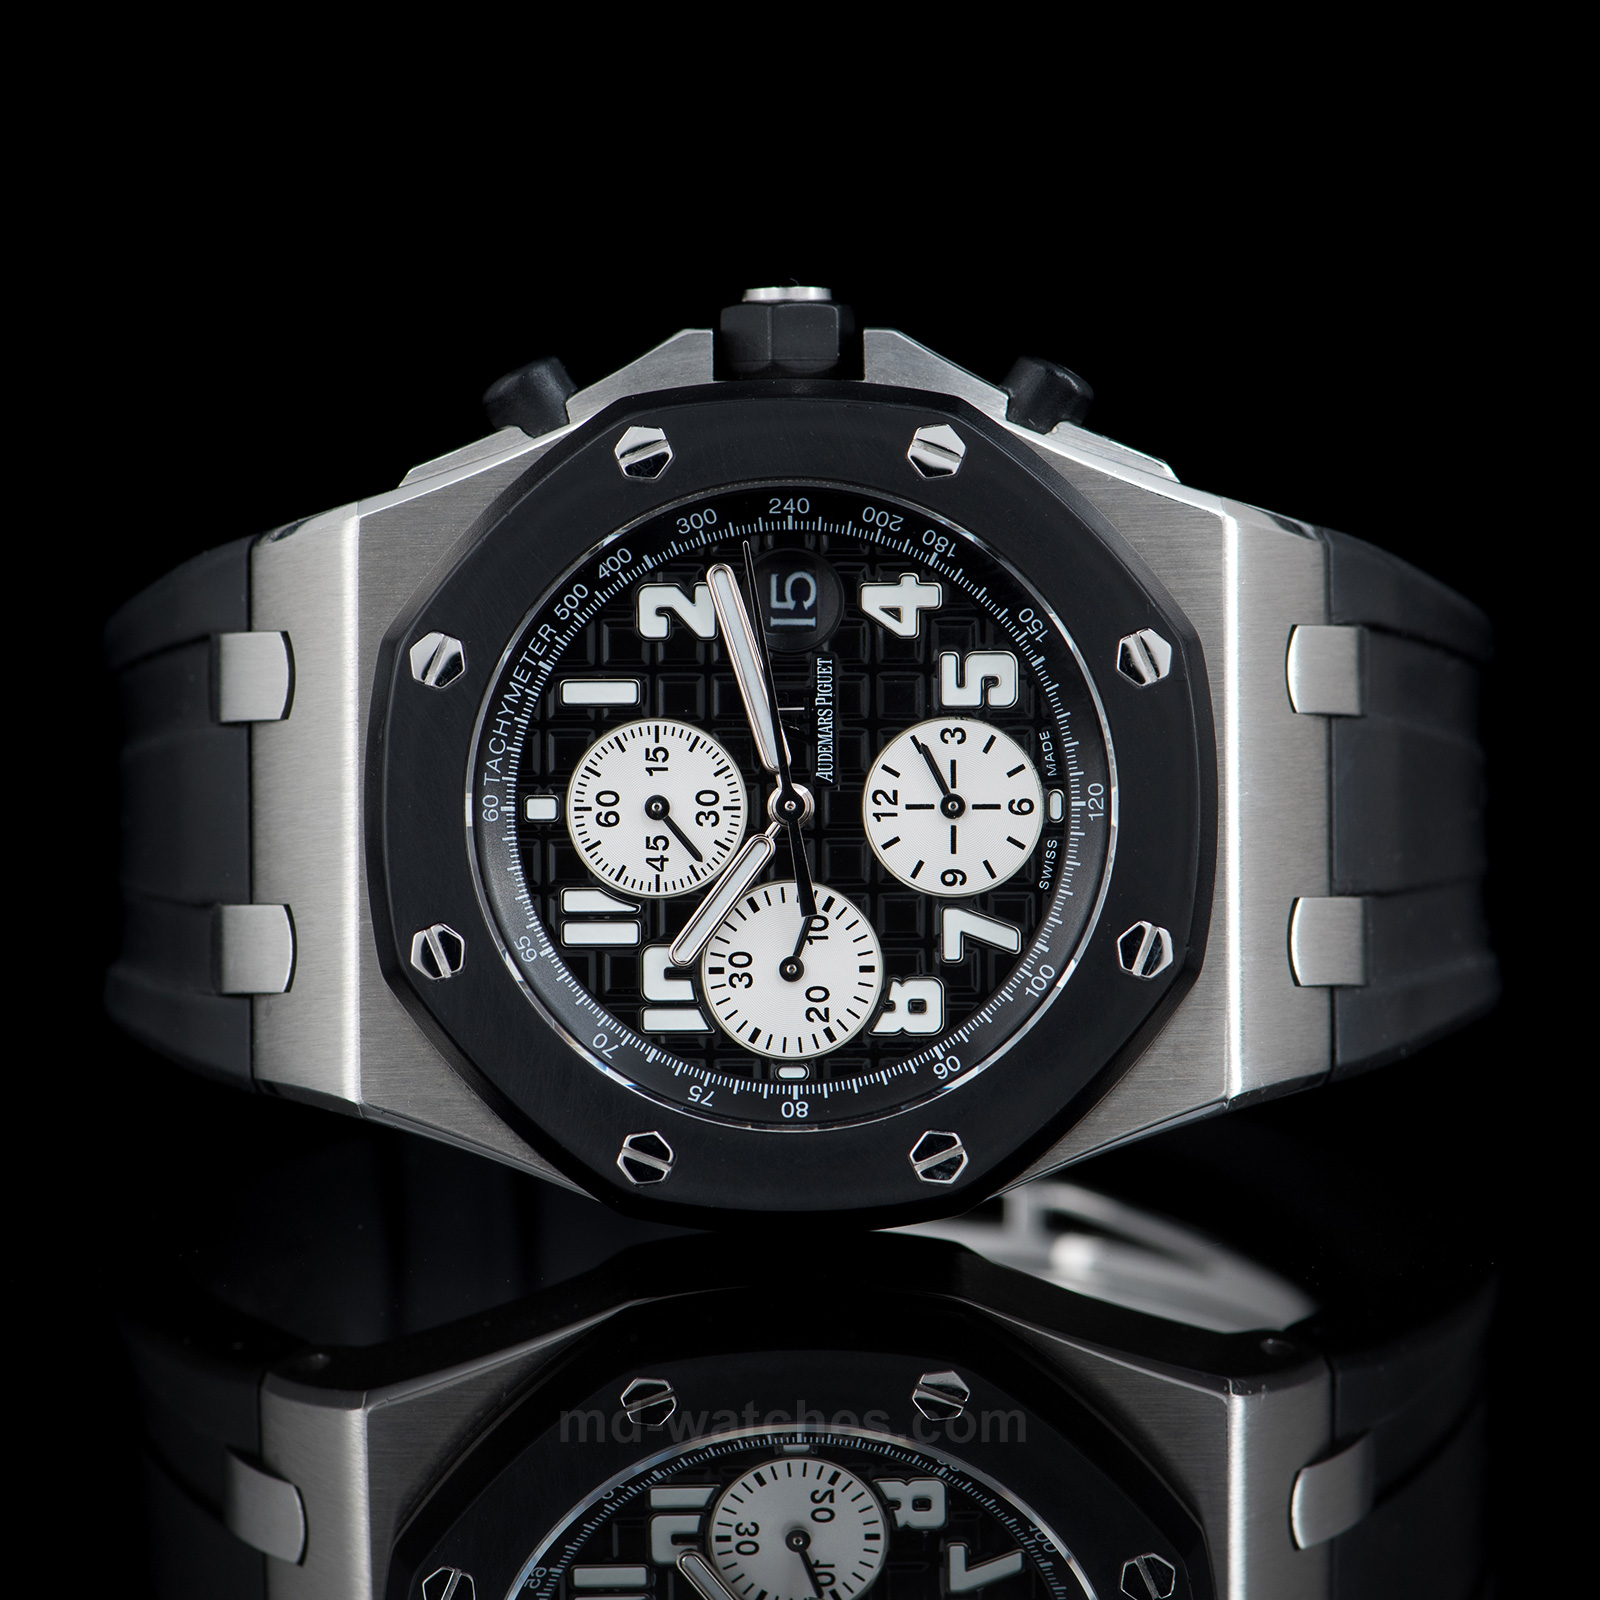 29ff405ef76 Audemars Piguet Royal Oak Offshore Chronograph Ref.: 25940SK.OO.D002CA.03 –  42mm